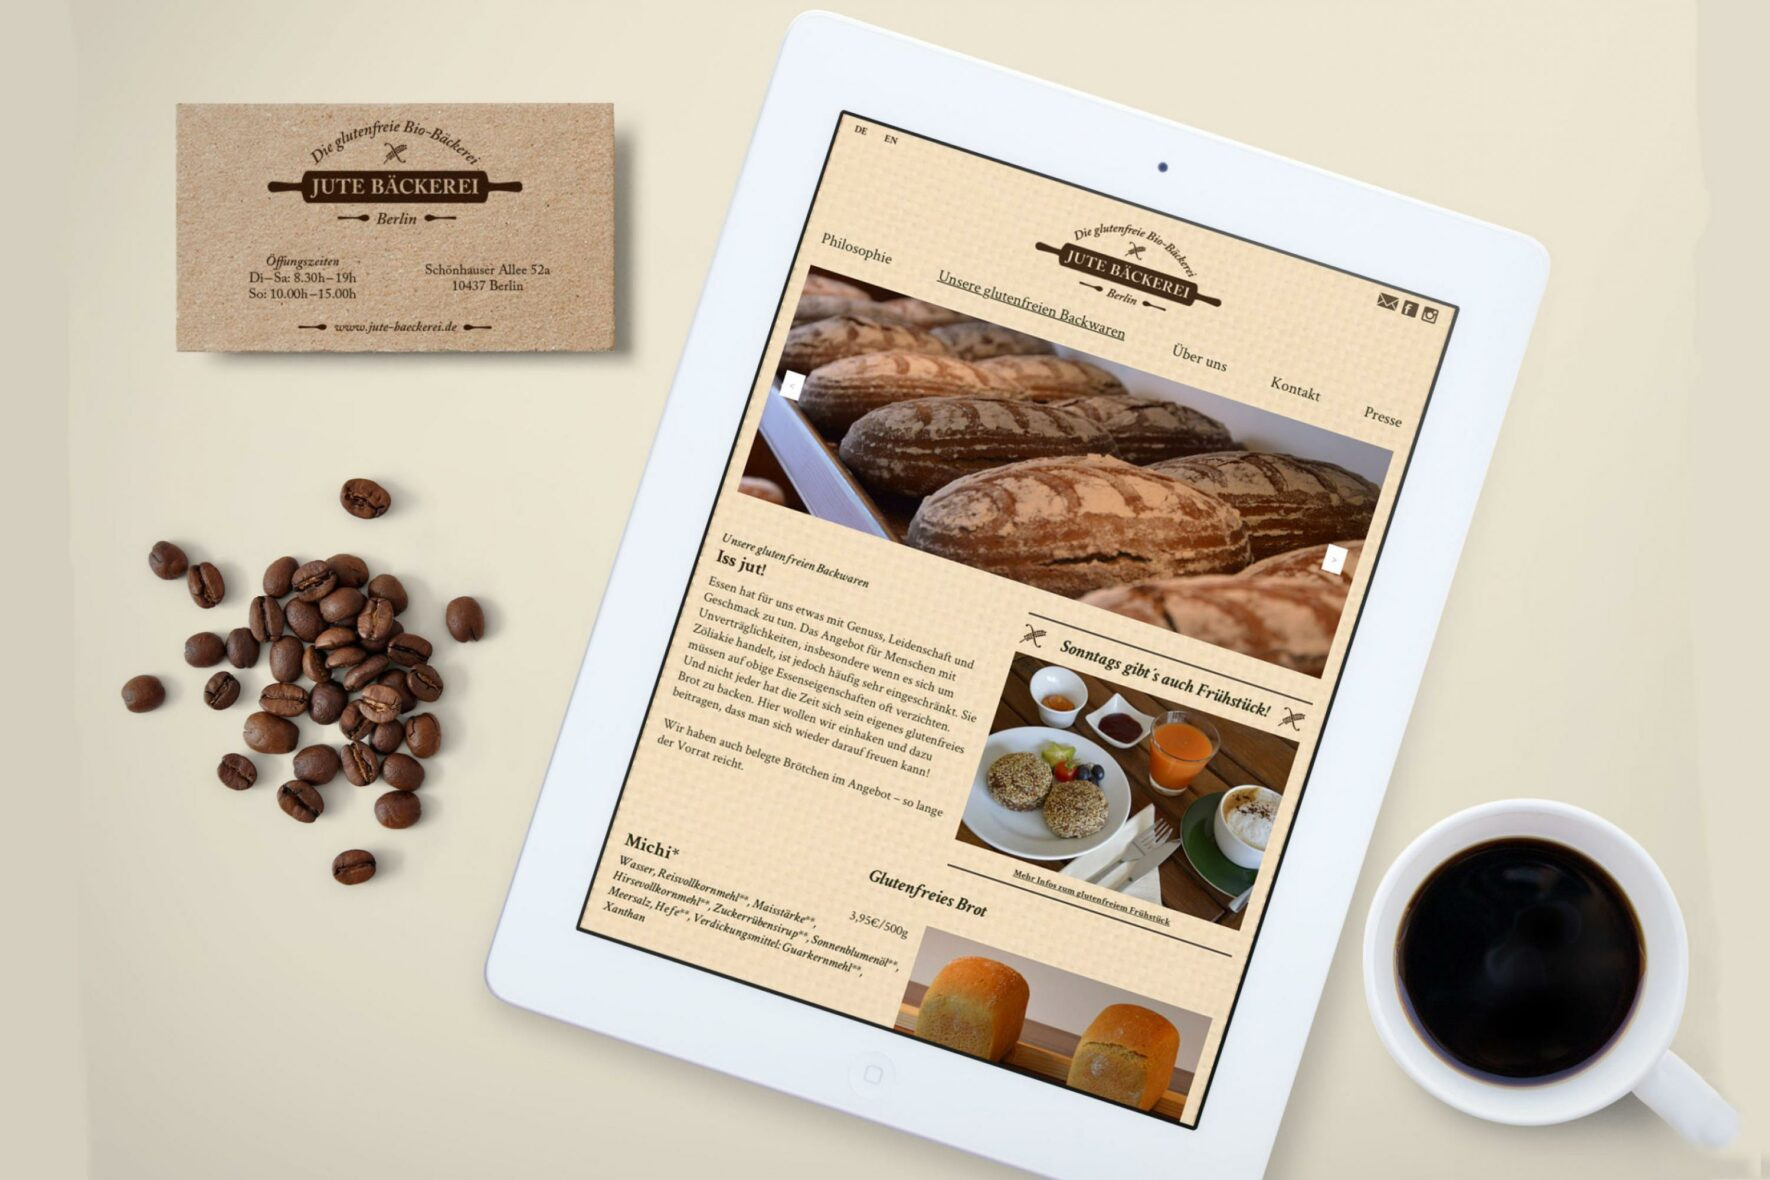 Glutenfreie-Bäckerei-Berlin-Jute-Bäckerei-Corporate-Design-05-Webdesign